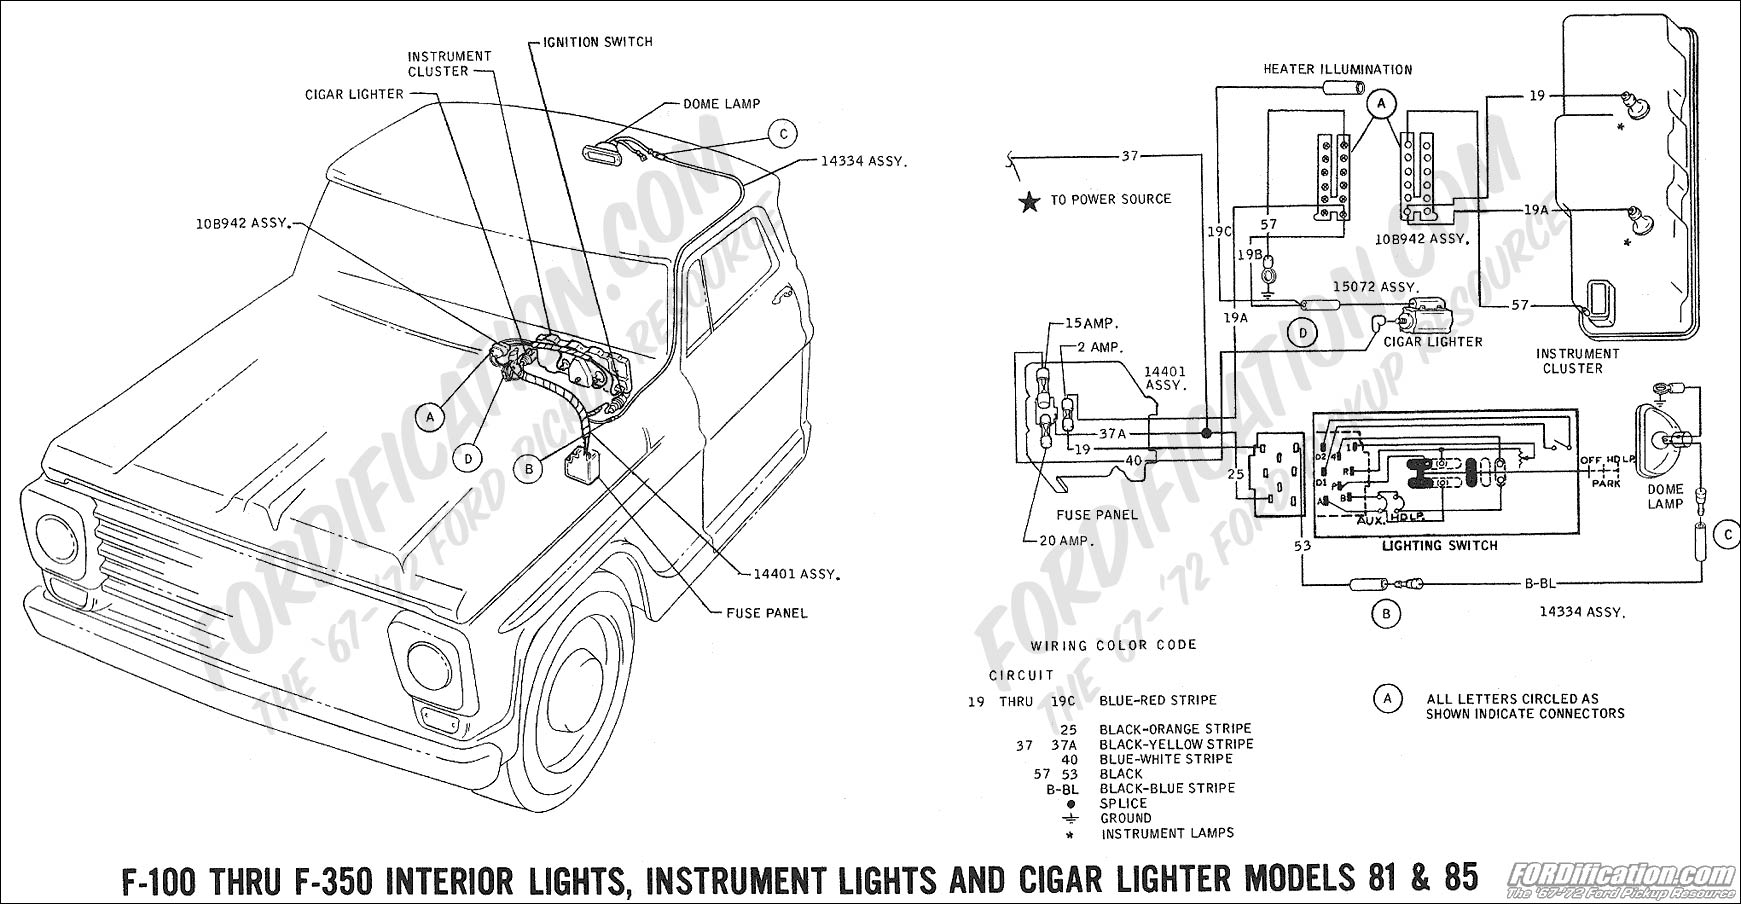 69wiring_interiorlights models81 85 ford truck technical drawings and schematics section h wiring